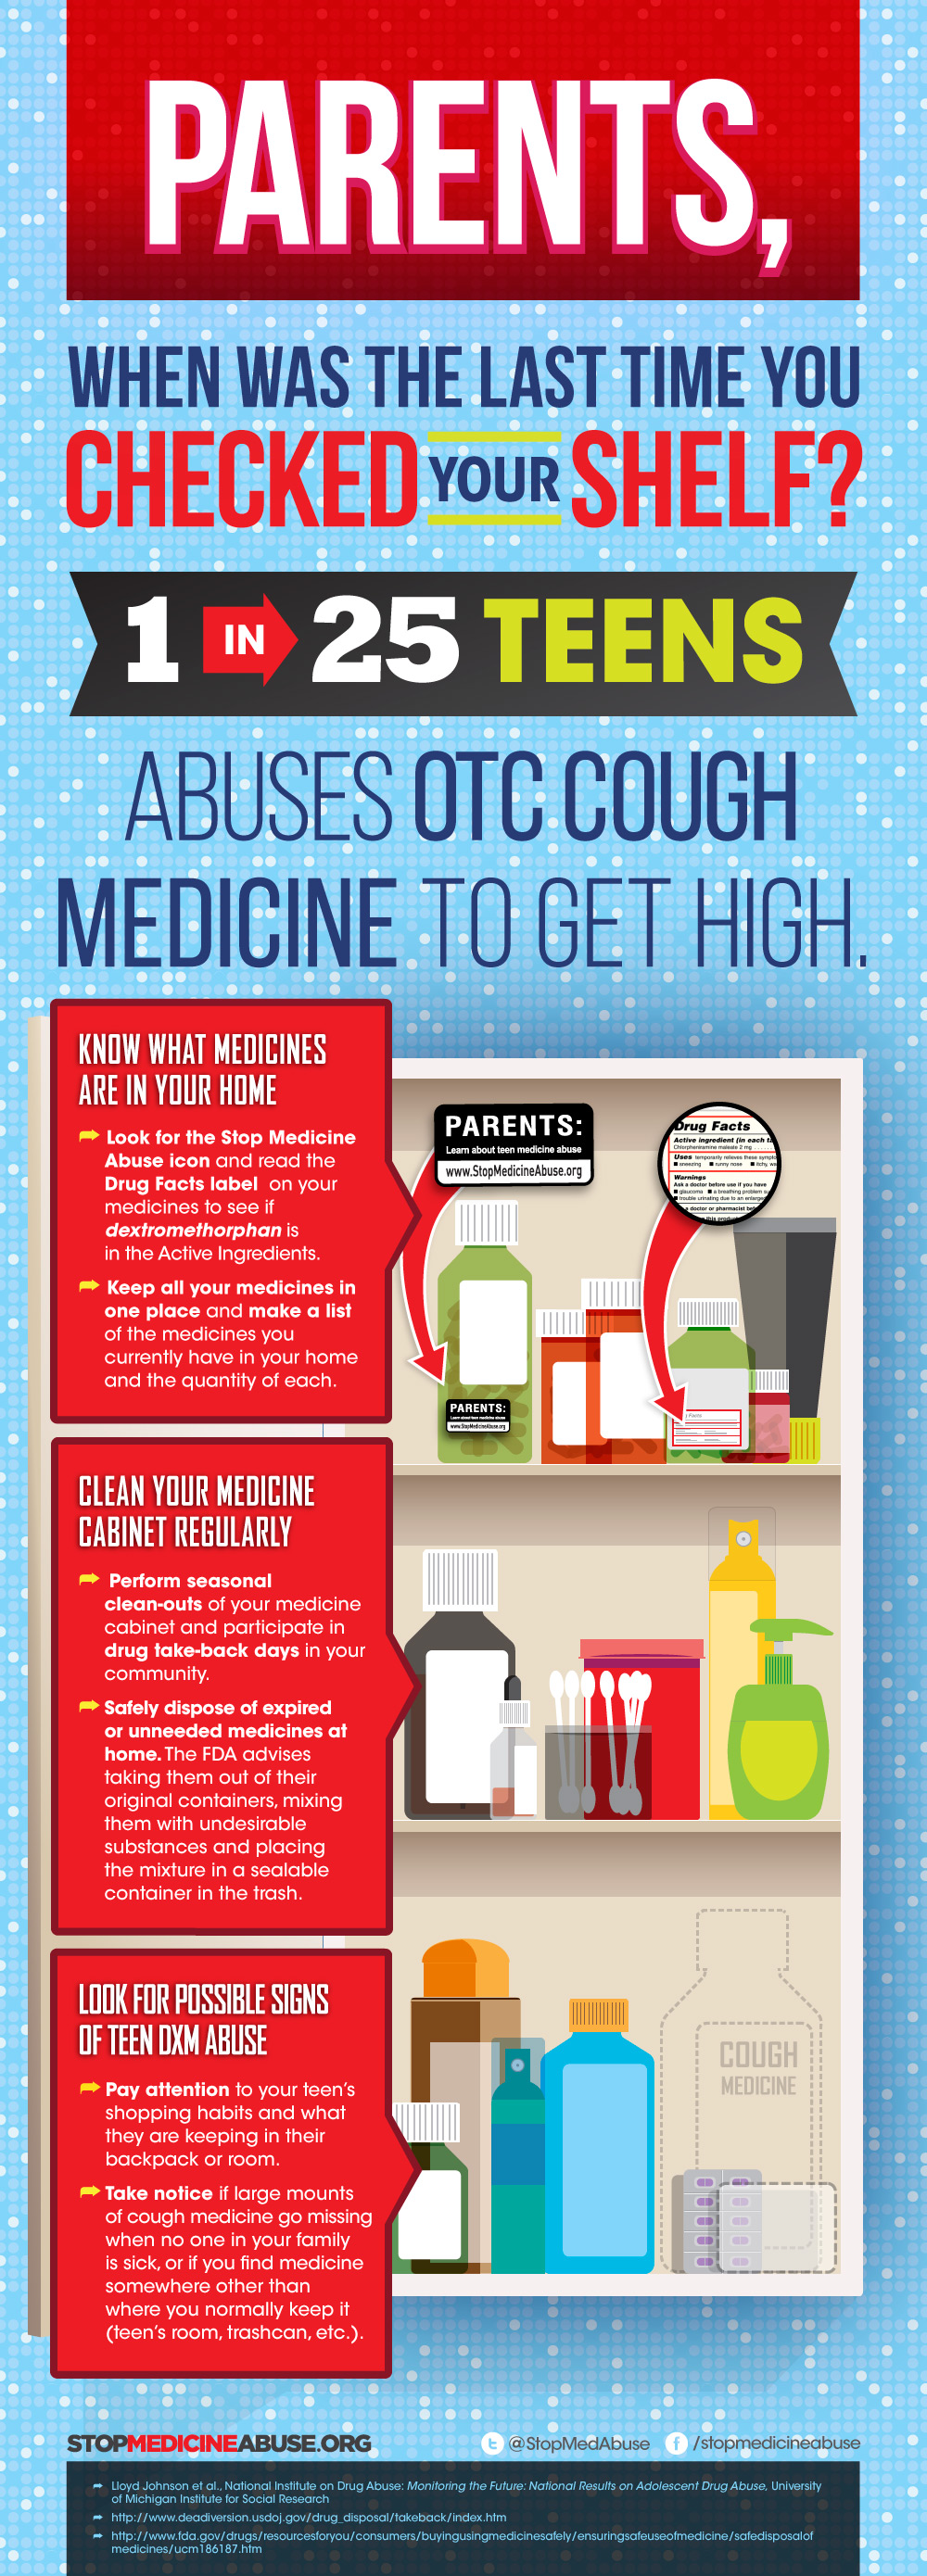 Parents_MedCab_Infographic-1